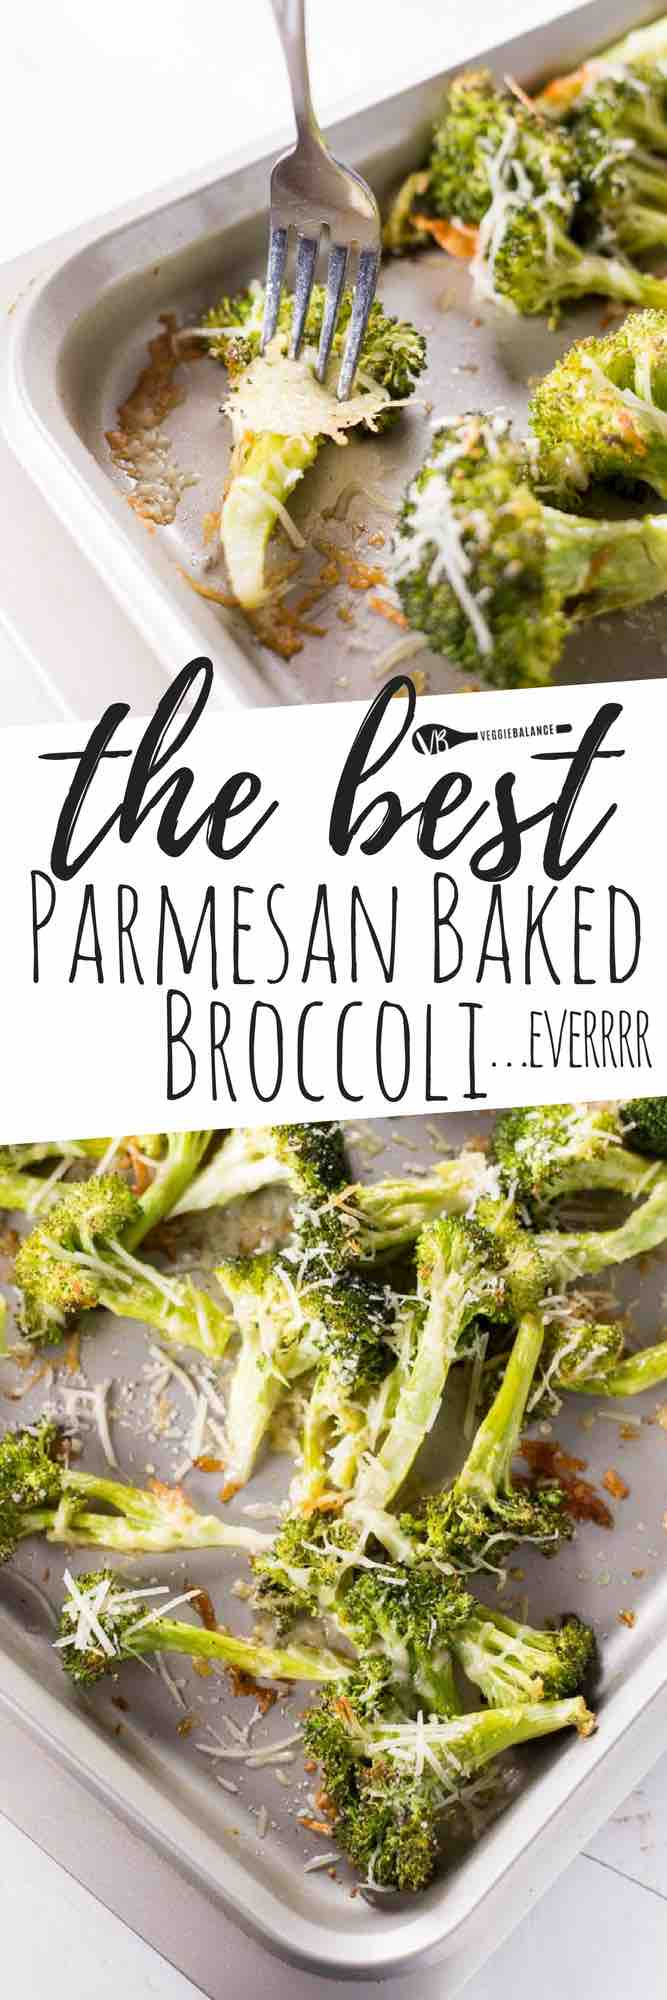 THE BEST and ONLY Parmesan Roasted Broccoli recipe you'll ever need. It is by far the easiest way to make this healthy and nutritious vegetable! Three easy ingredients is all you need! #glutenfree #healthy #healthyrecipes #recipes #vegetarian #vegetarianrecipes #glutenfreerecipes